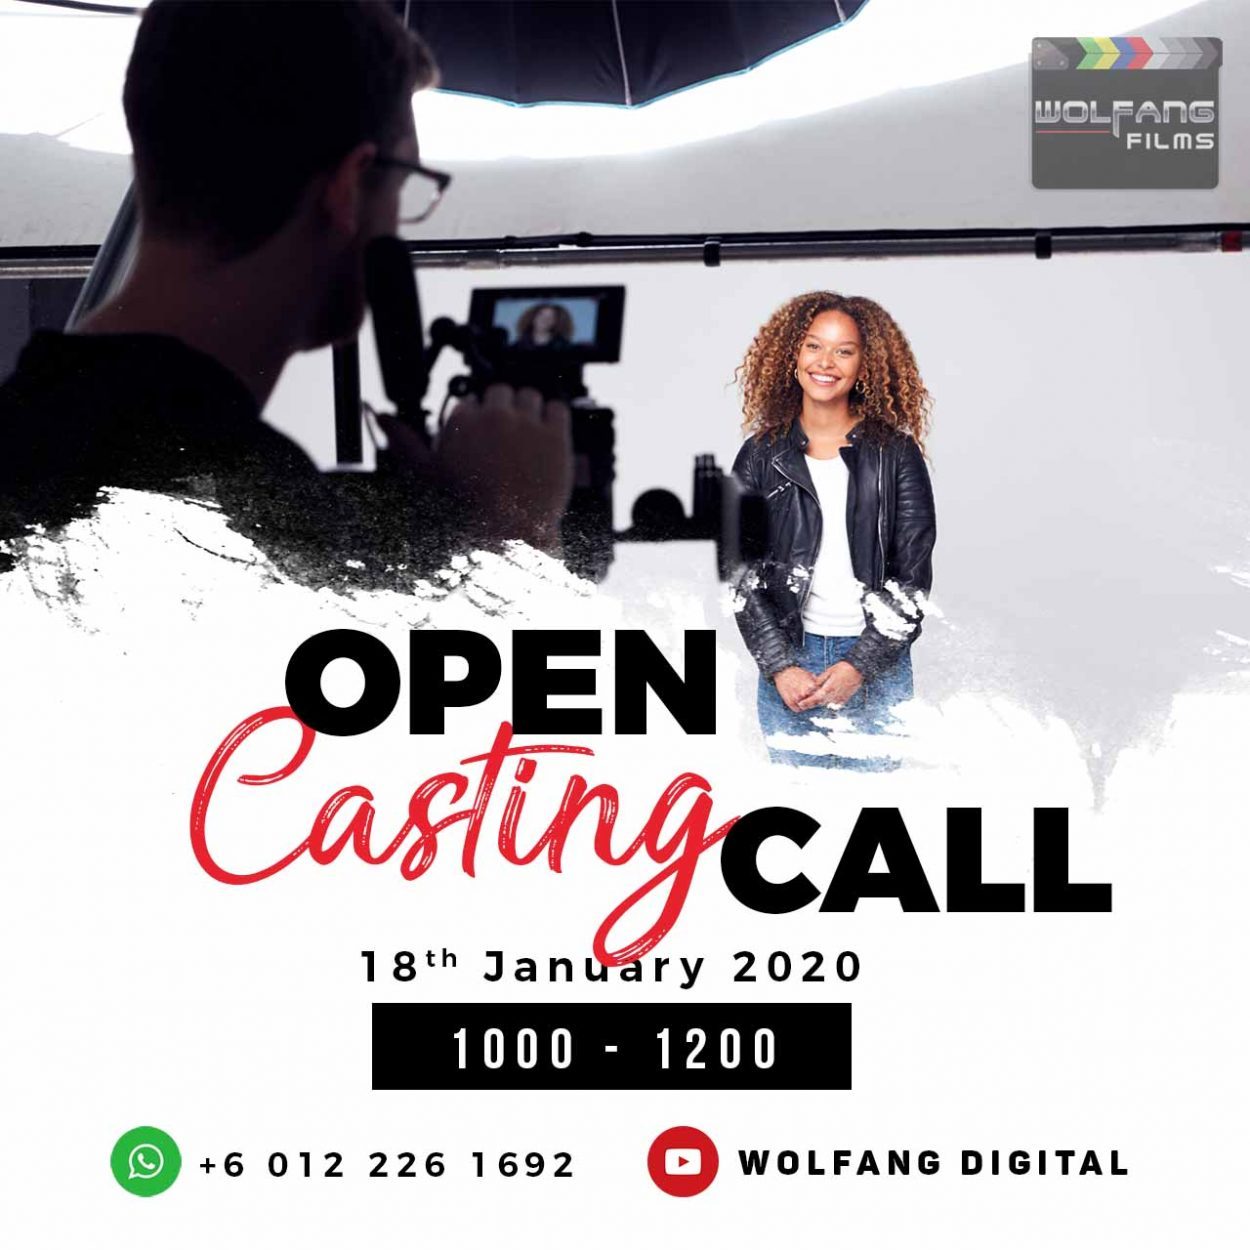 Open Casting Call (WolFang Digital)